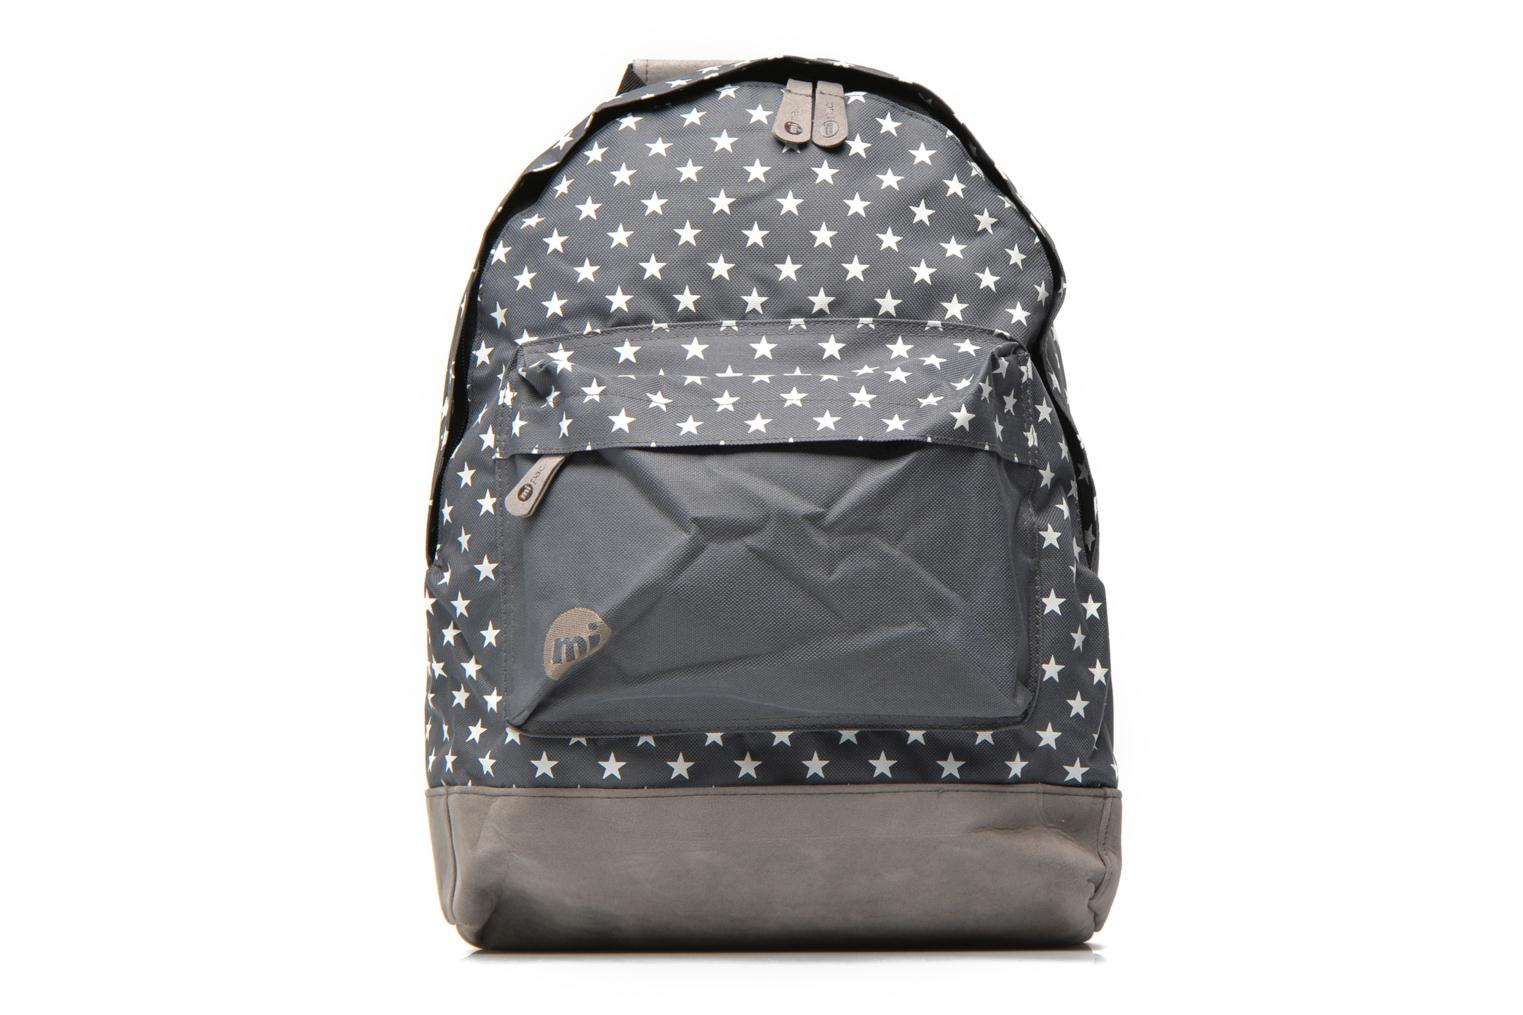 Sacs à dos Mi-Pac All stars Backpack Gris vue détail/paire